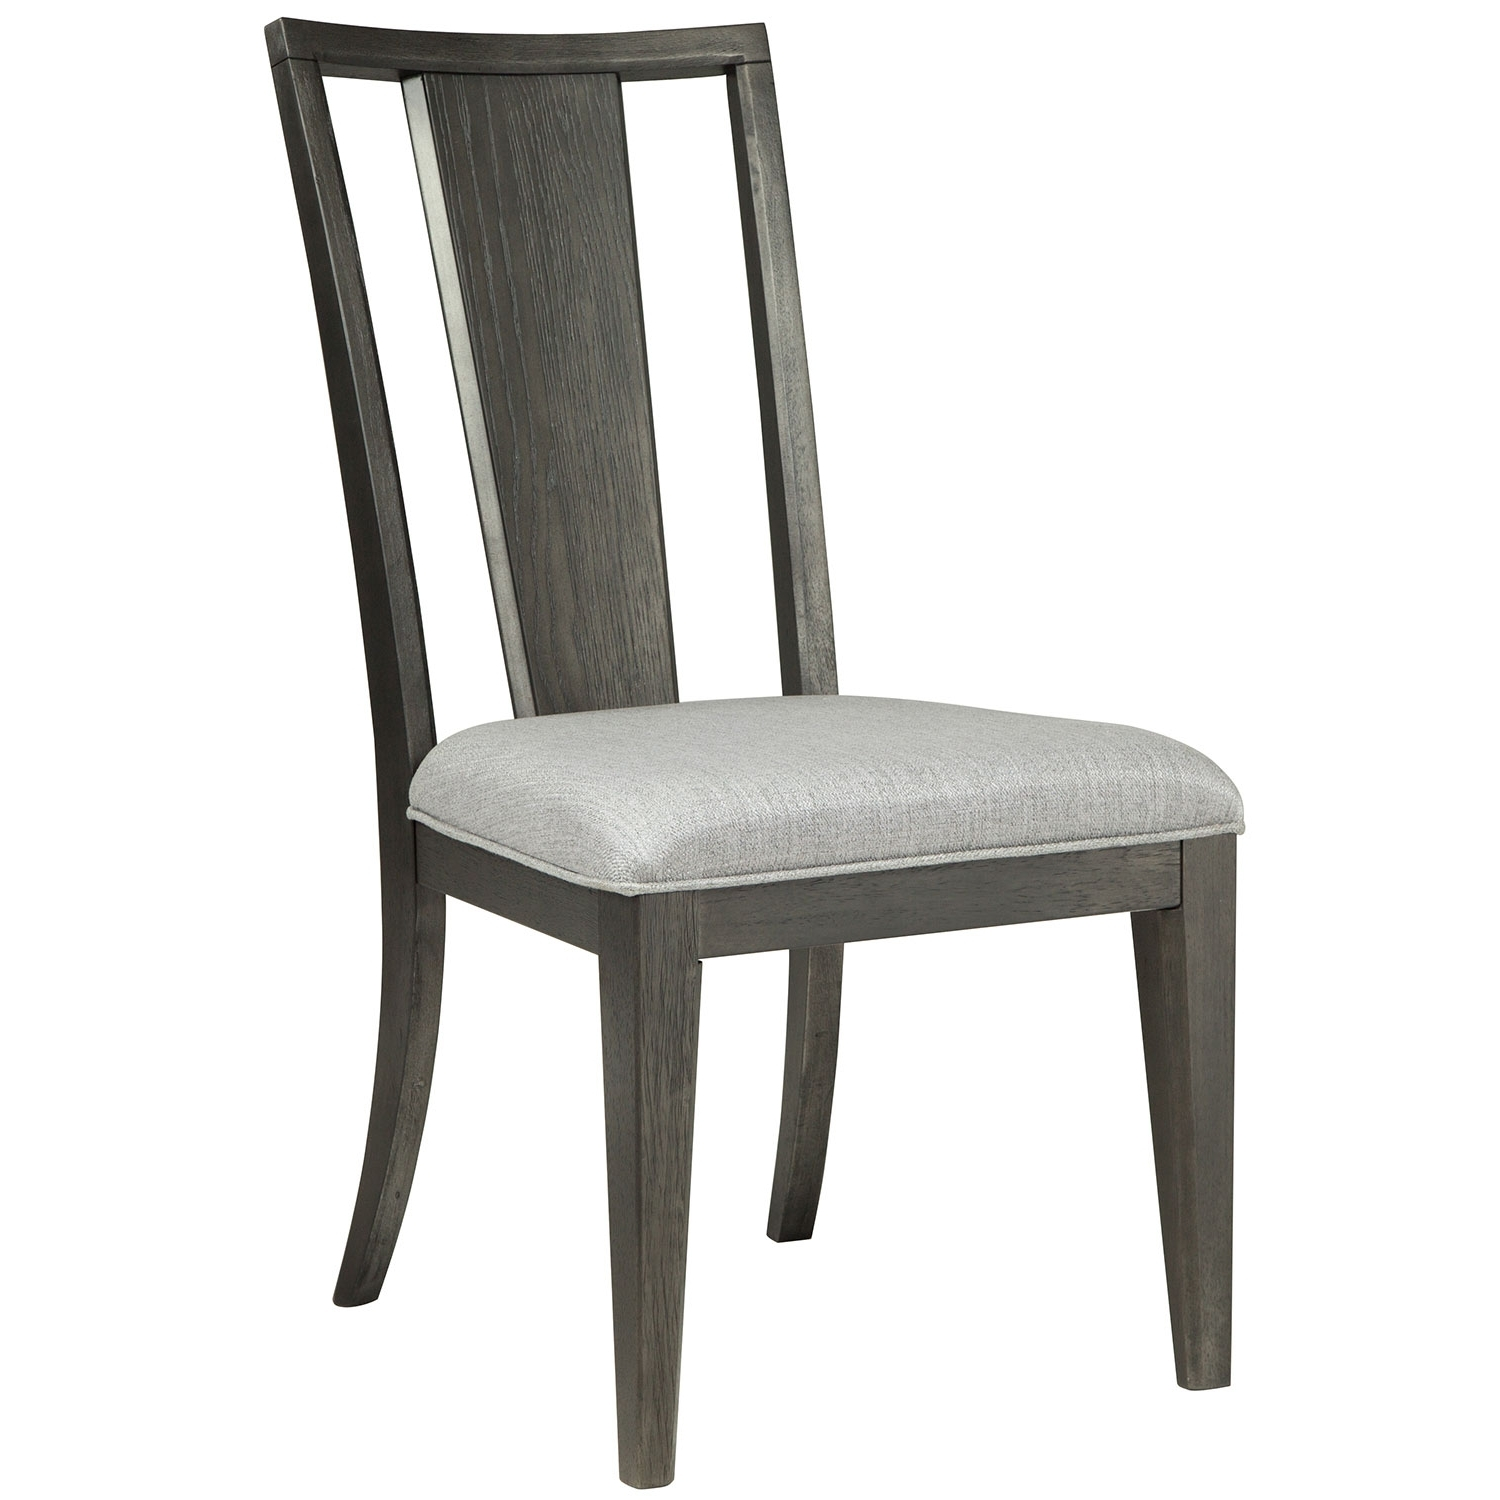 Current 251 First Cooper Luxe Living Dining Side Chair With Upholstered Seat Within Cooper Upholstered Side Chairs (View 9 of 20)